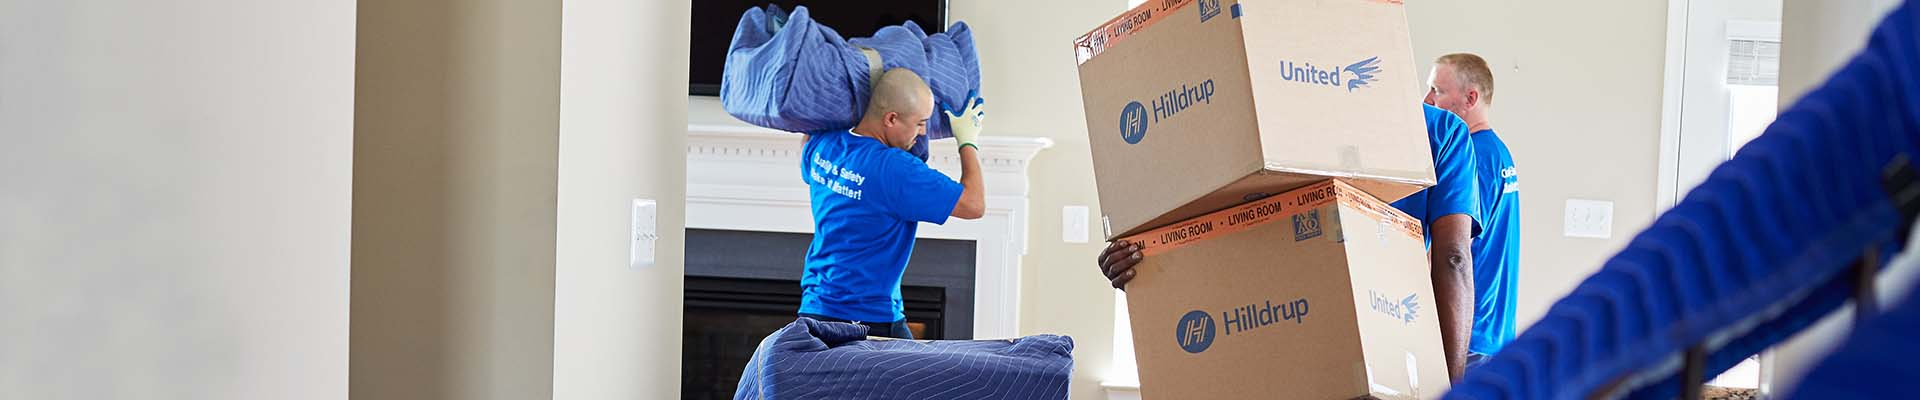 Hilldrup Professional Movers And Storage Company